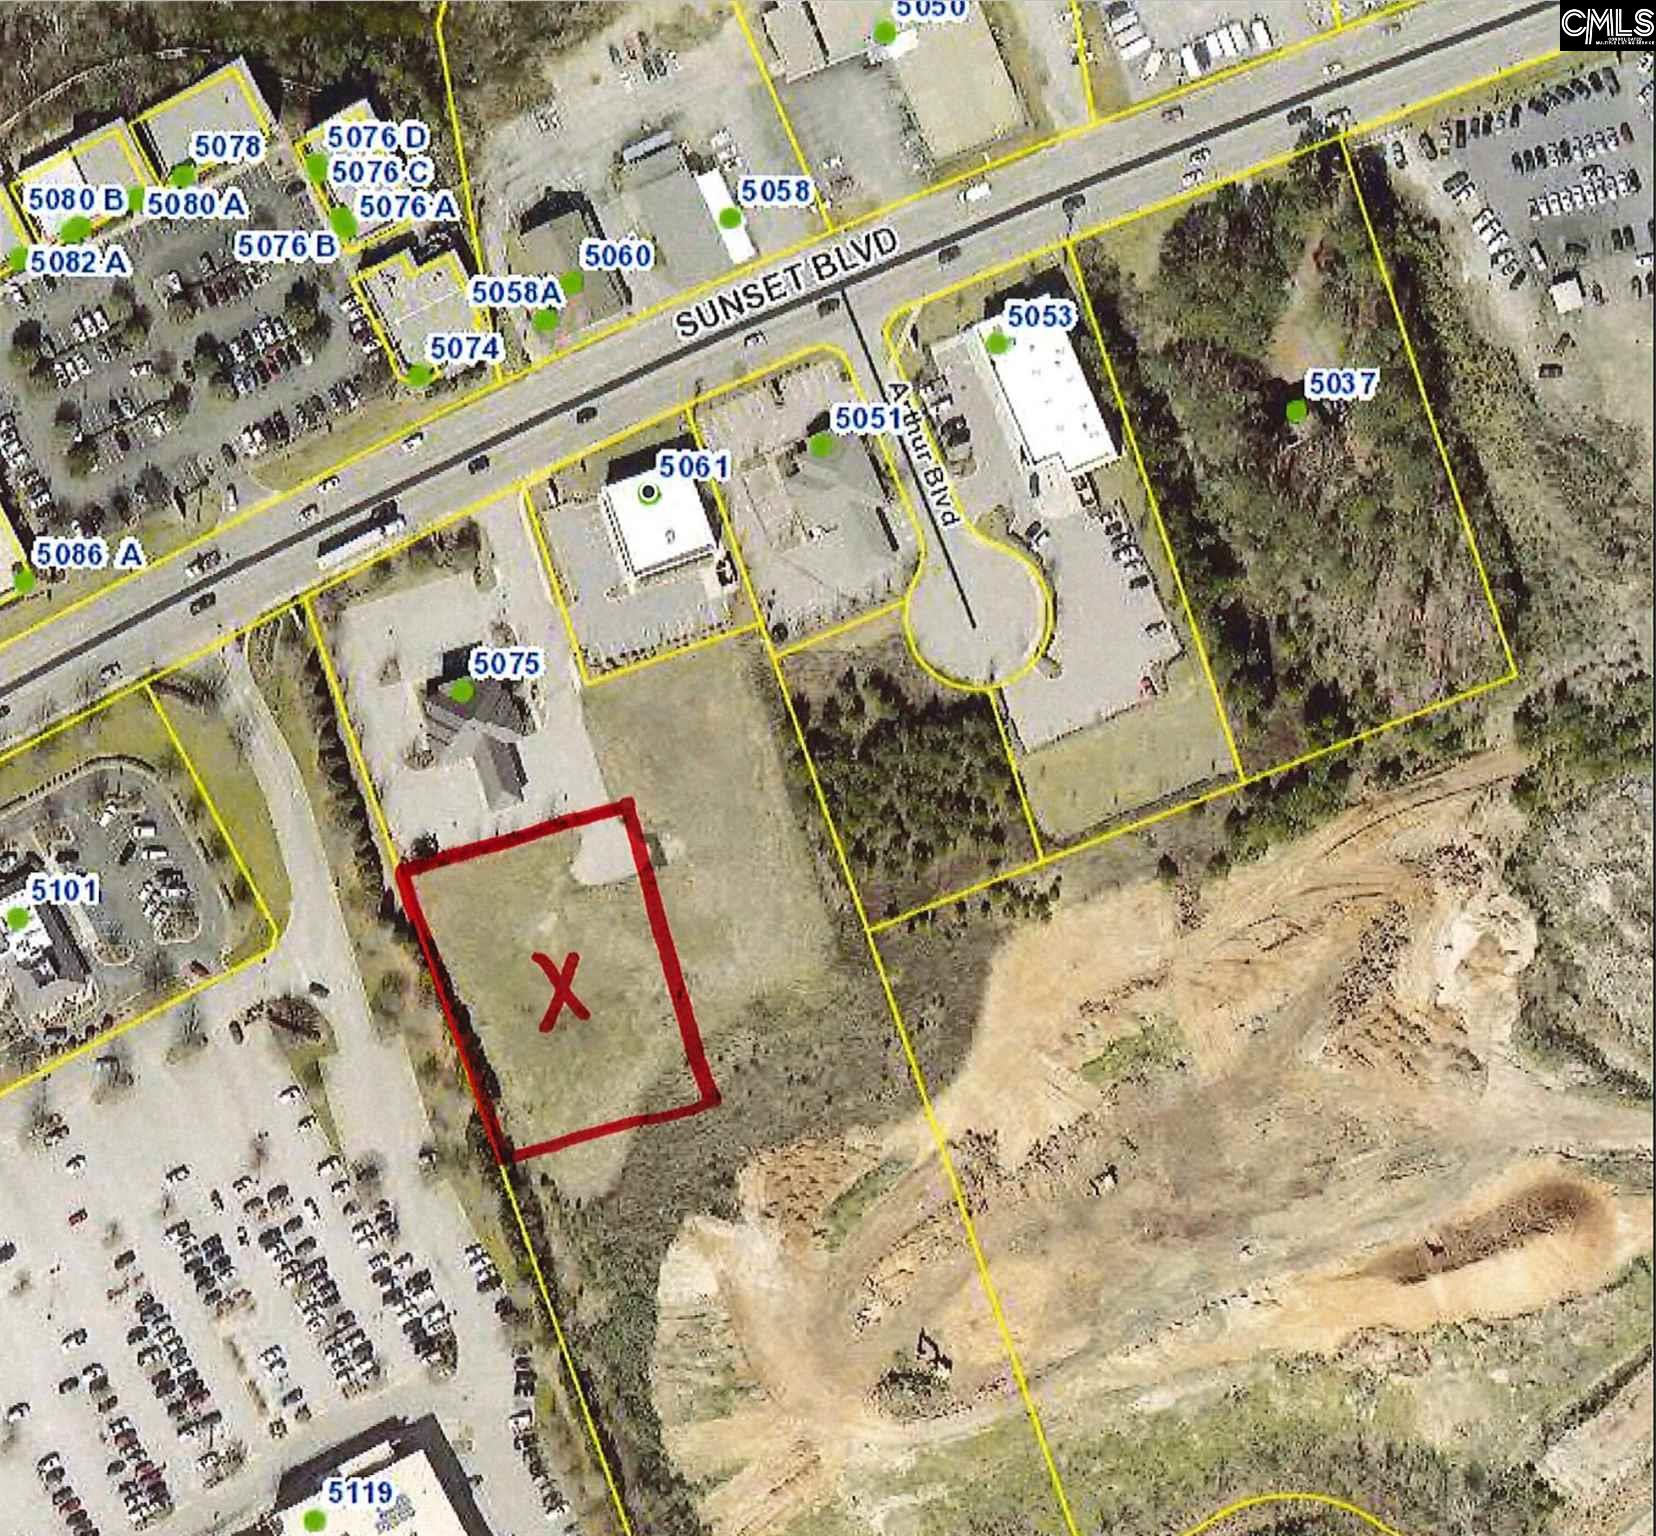 This property is a +/- 0.75 acres 'pad ready' outparcel off of Sunset Boulevard. The parcel is graded and has all utilities in place as well as an offsite detention in place.